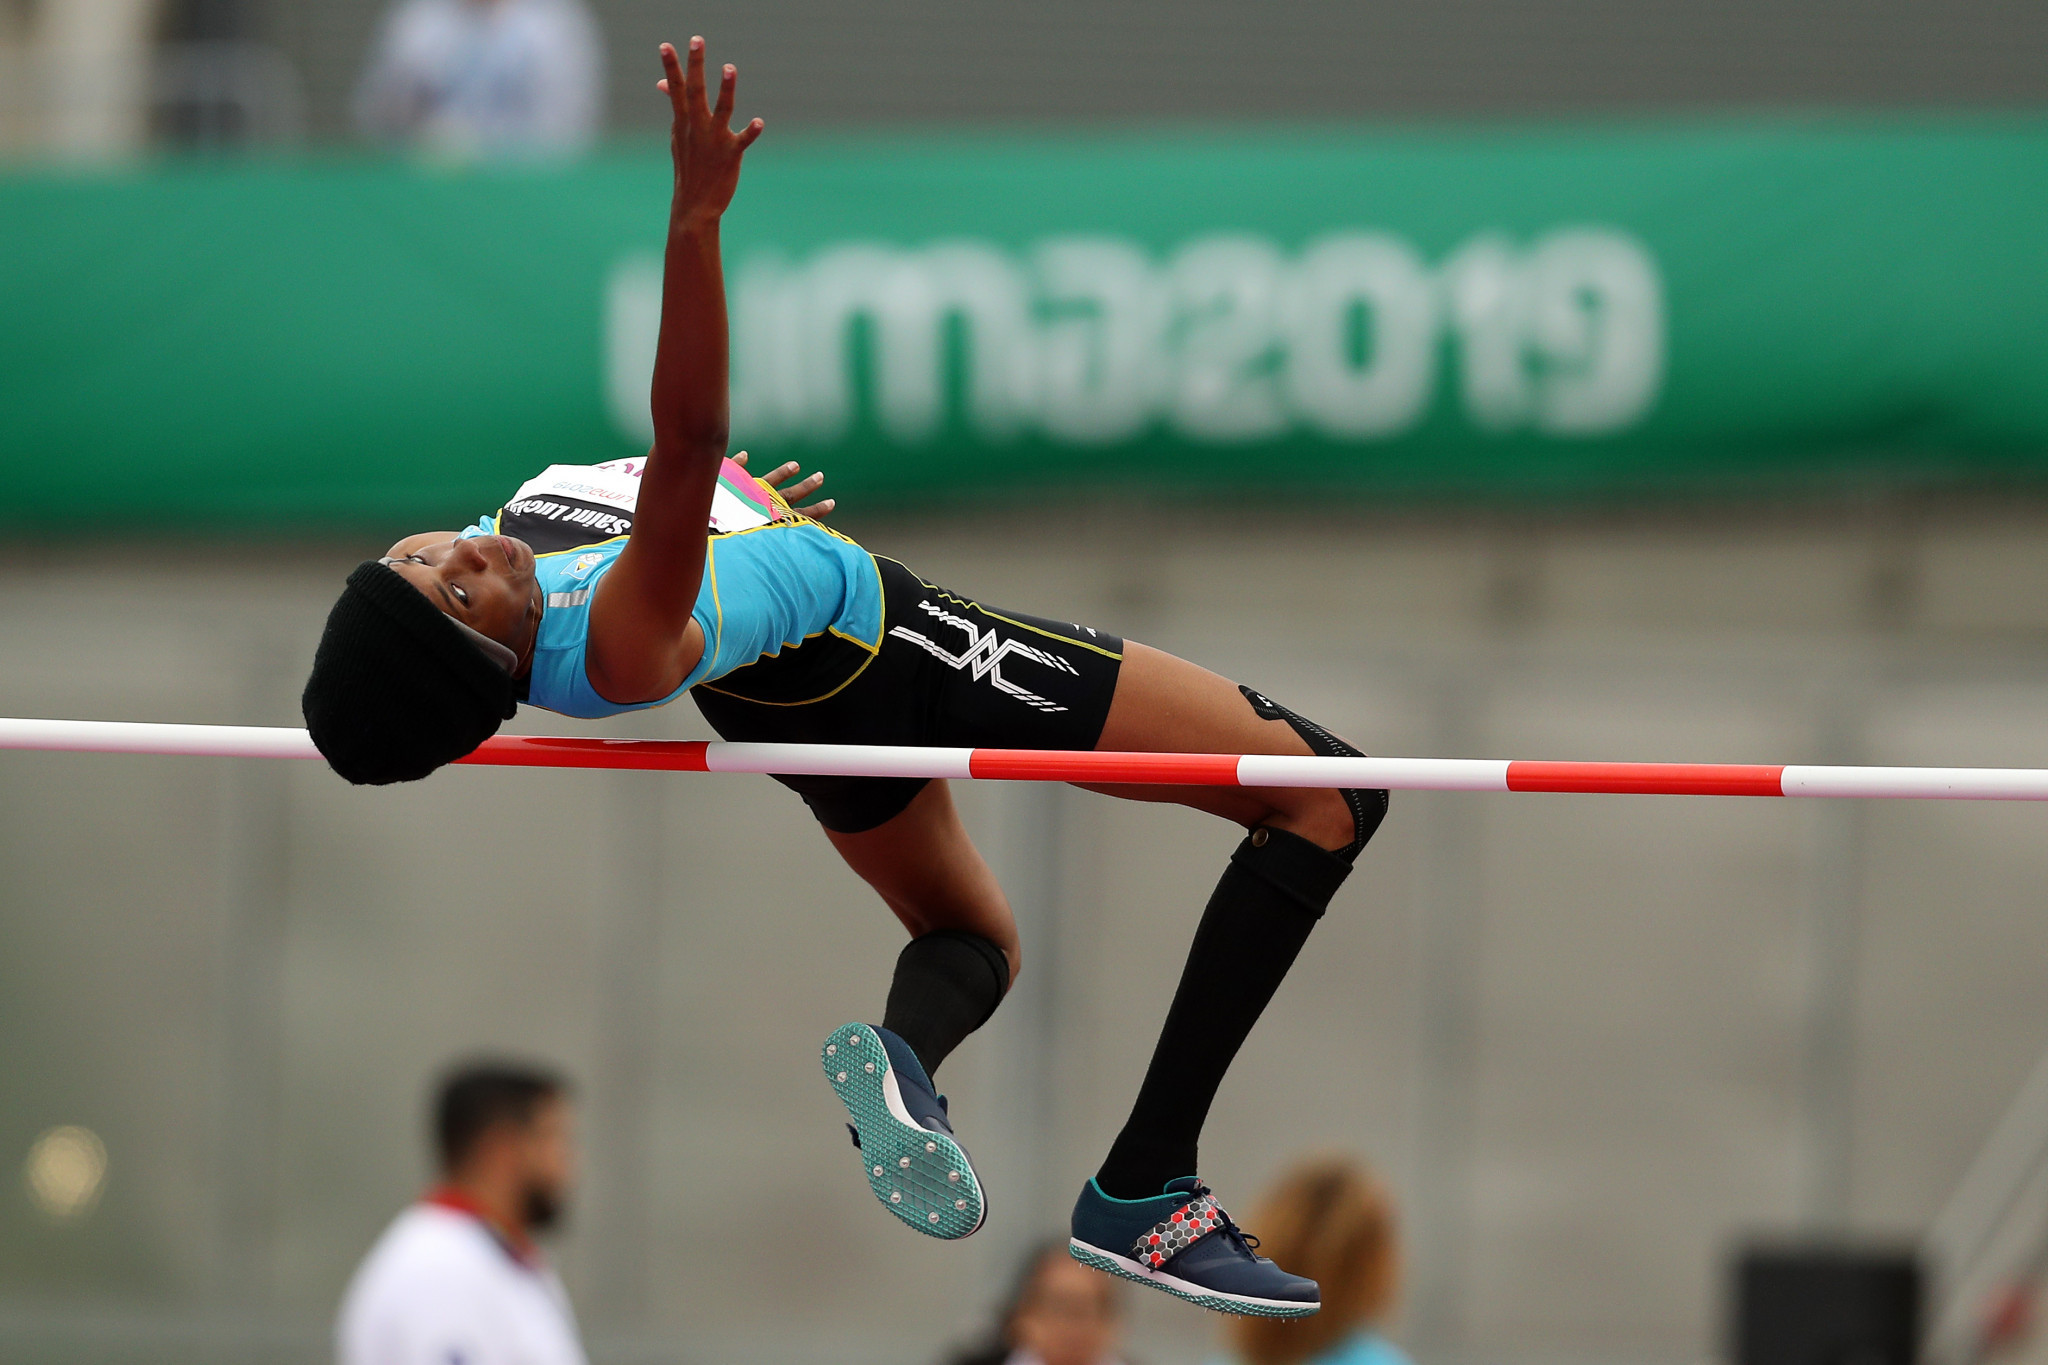 Levern Spencer defended her women's high jump title ©Getty Images